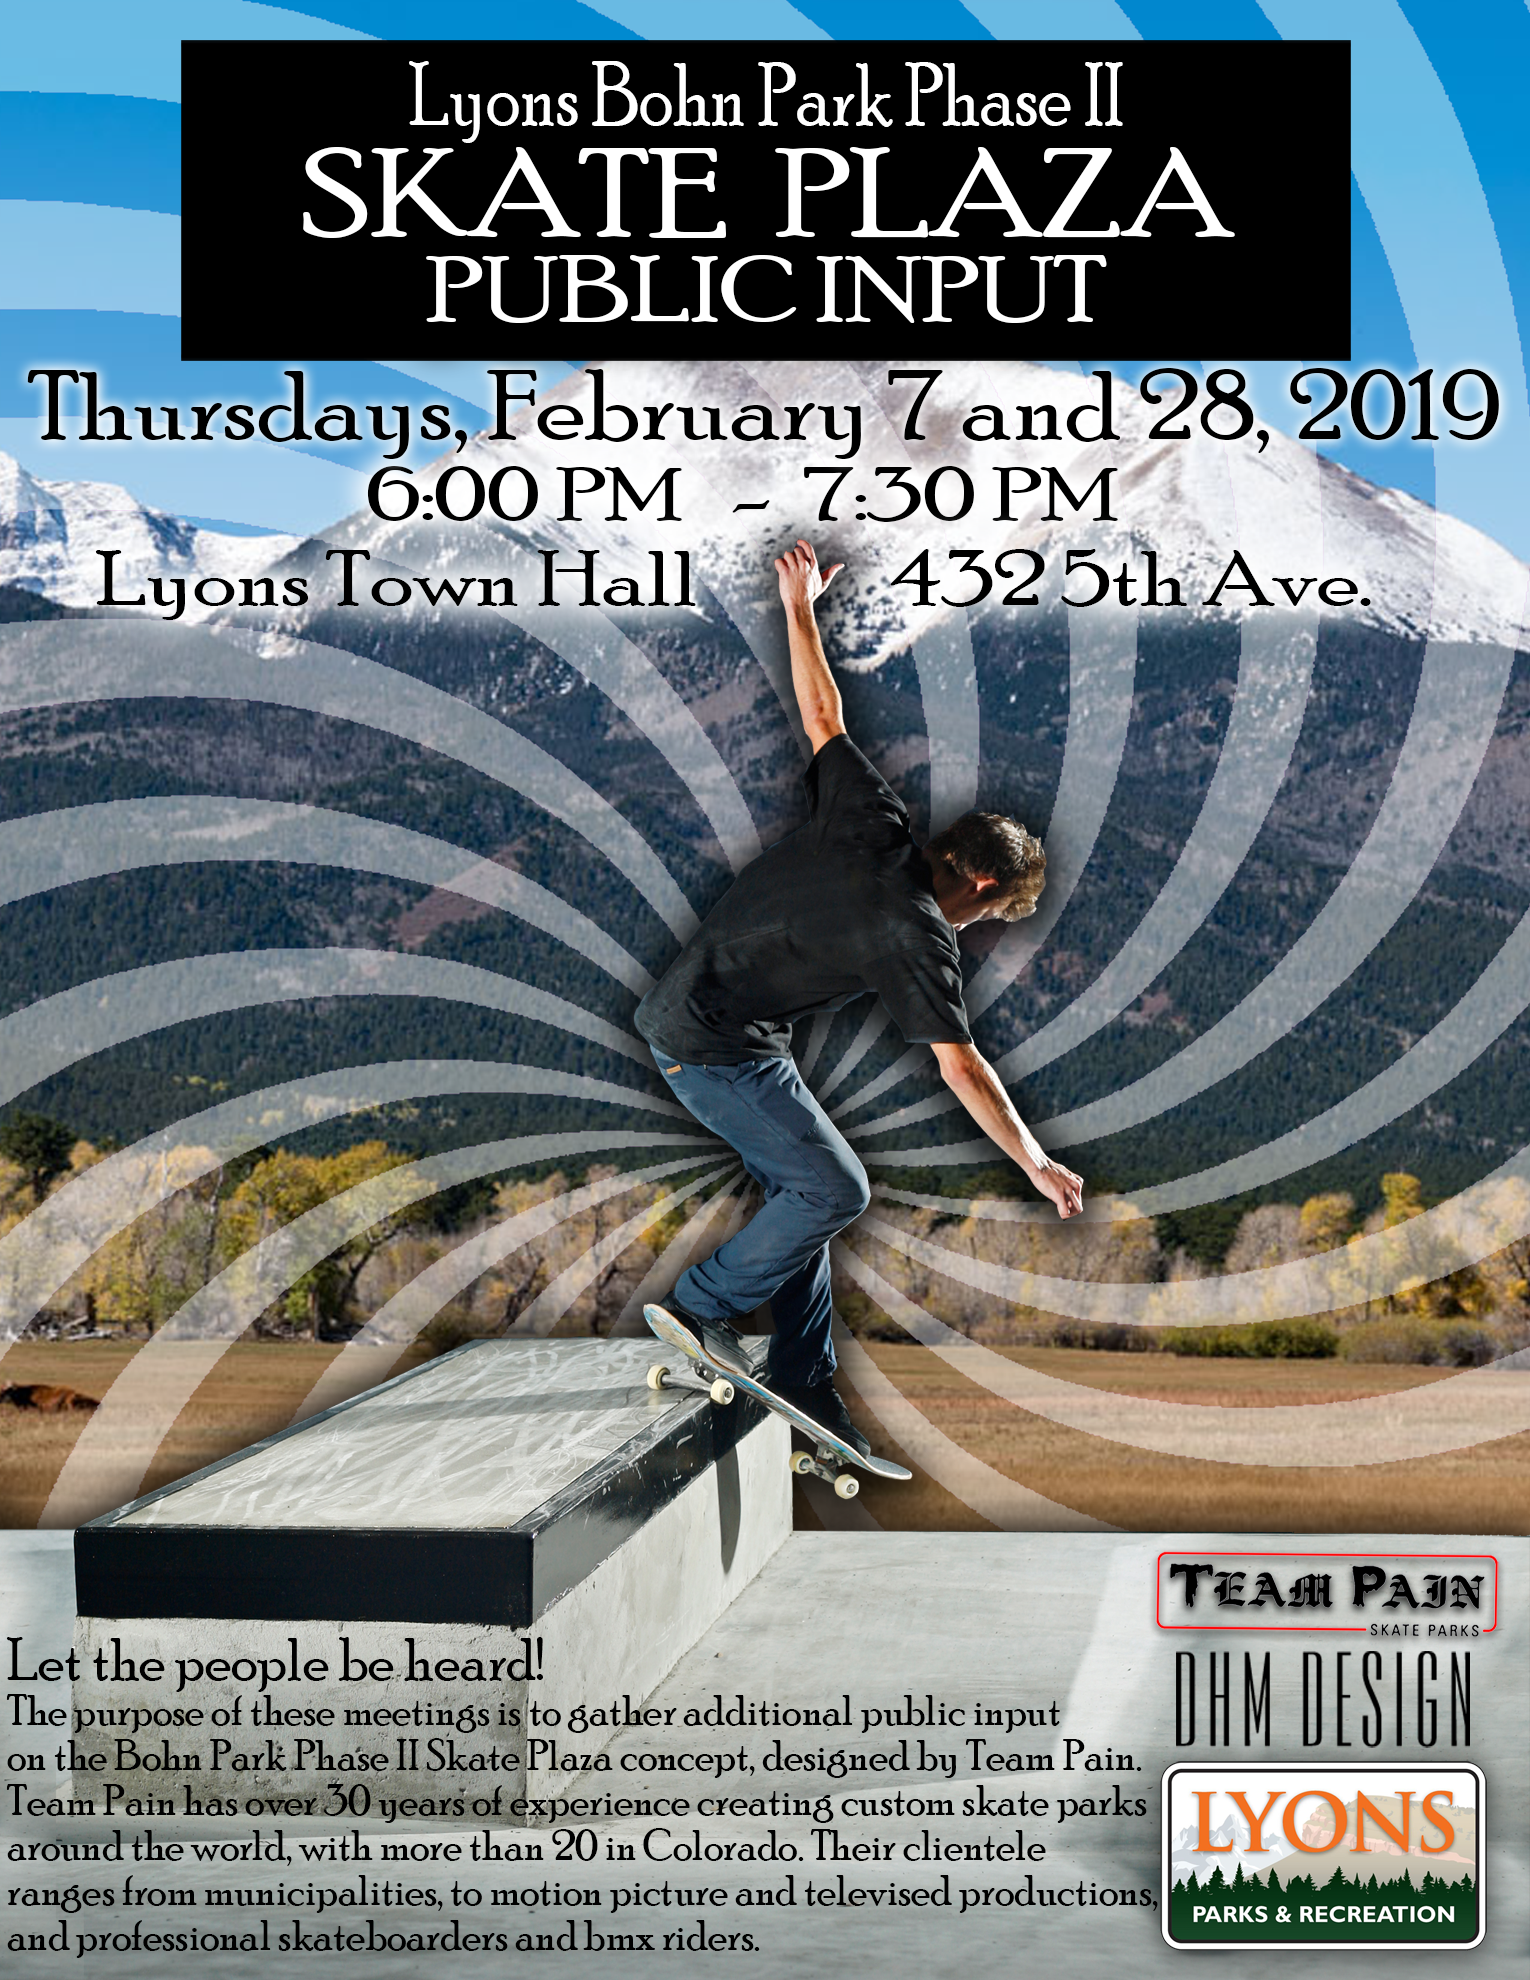 Skate Plaza Public Input Meetings